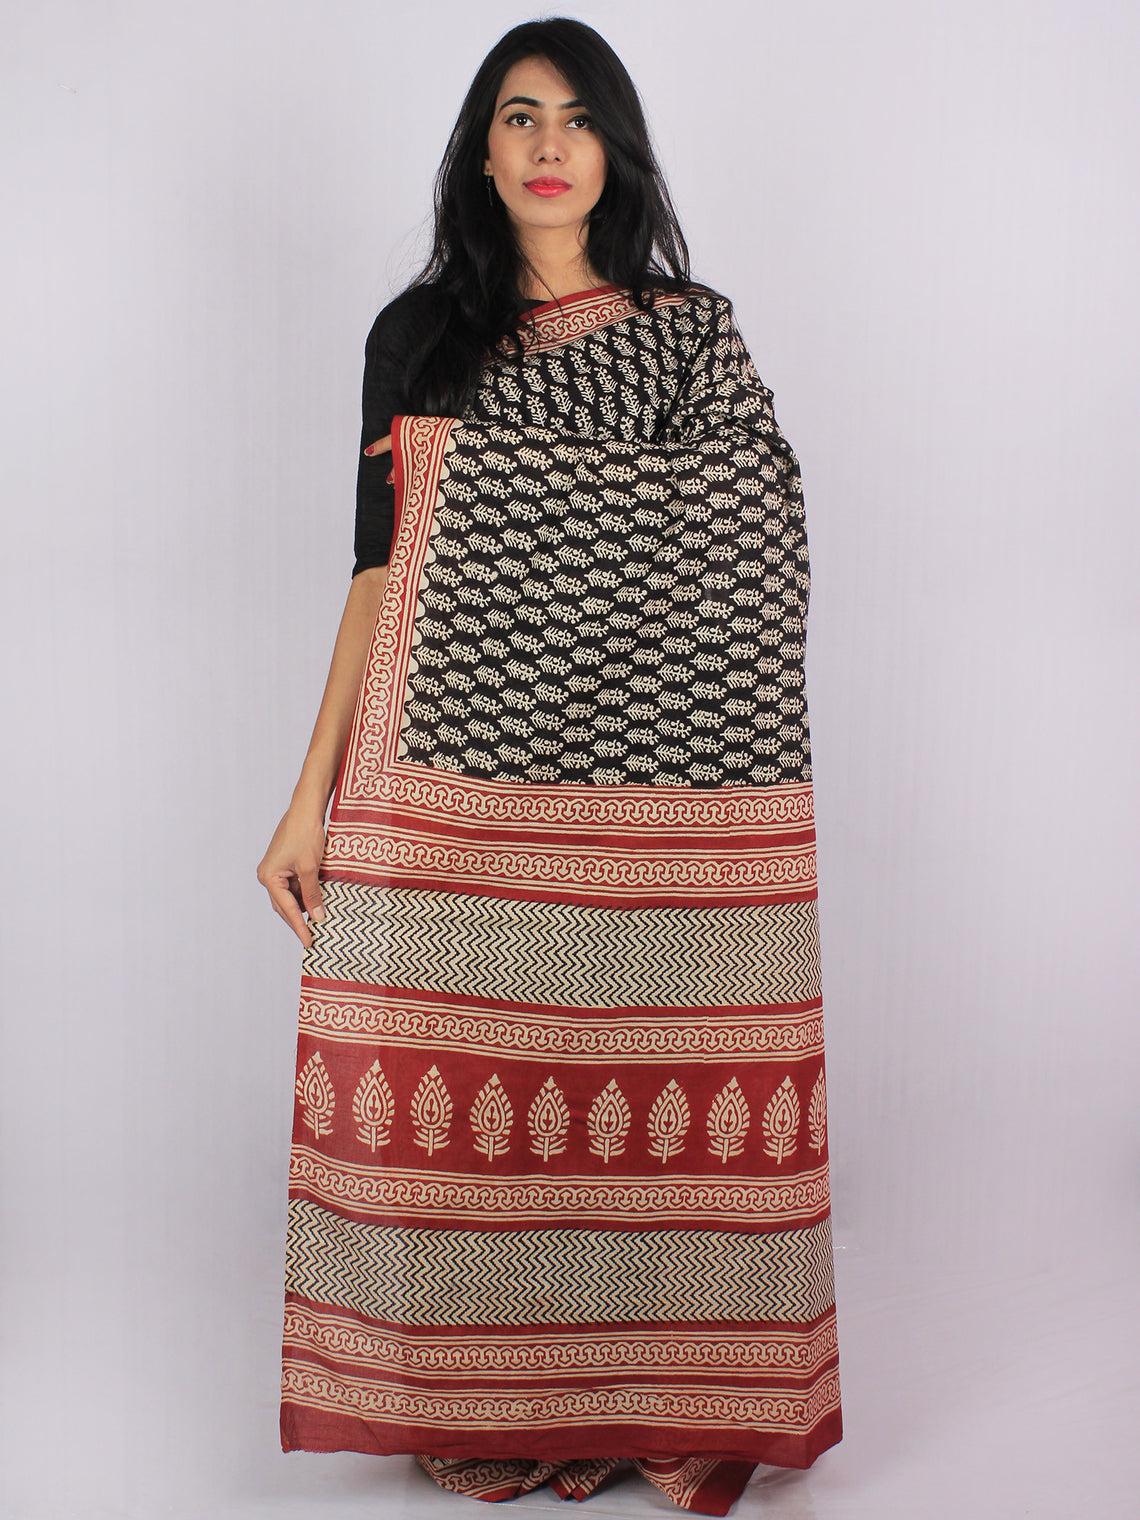 Black Rust Beige Cotton Hand Block Printed & Hand Painted Saree in Natural Colors - S031701189